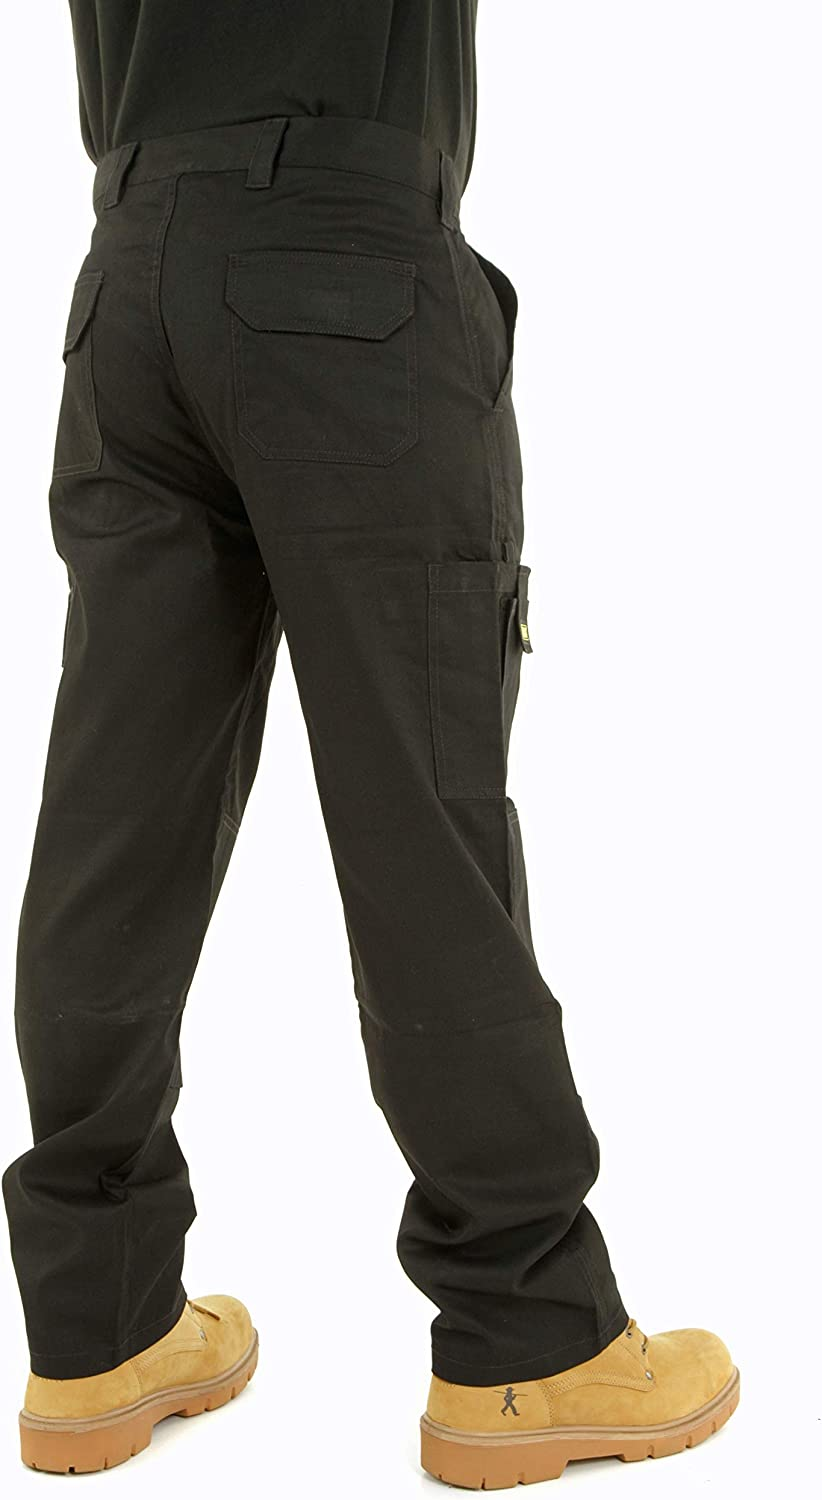 Mens Cargo Work Trousers Size 30 to 42 by MIG Combat with Knee PAD Pockets